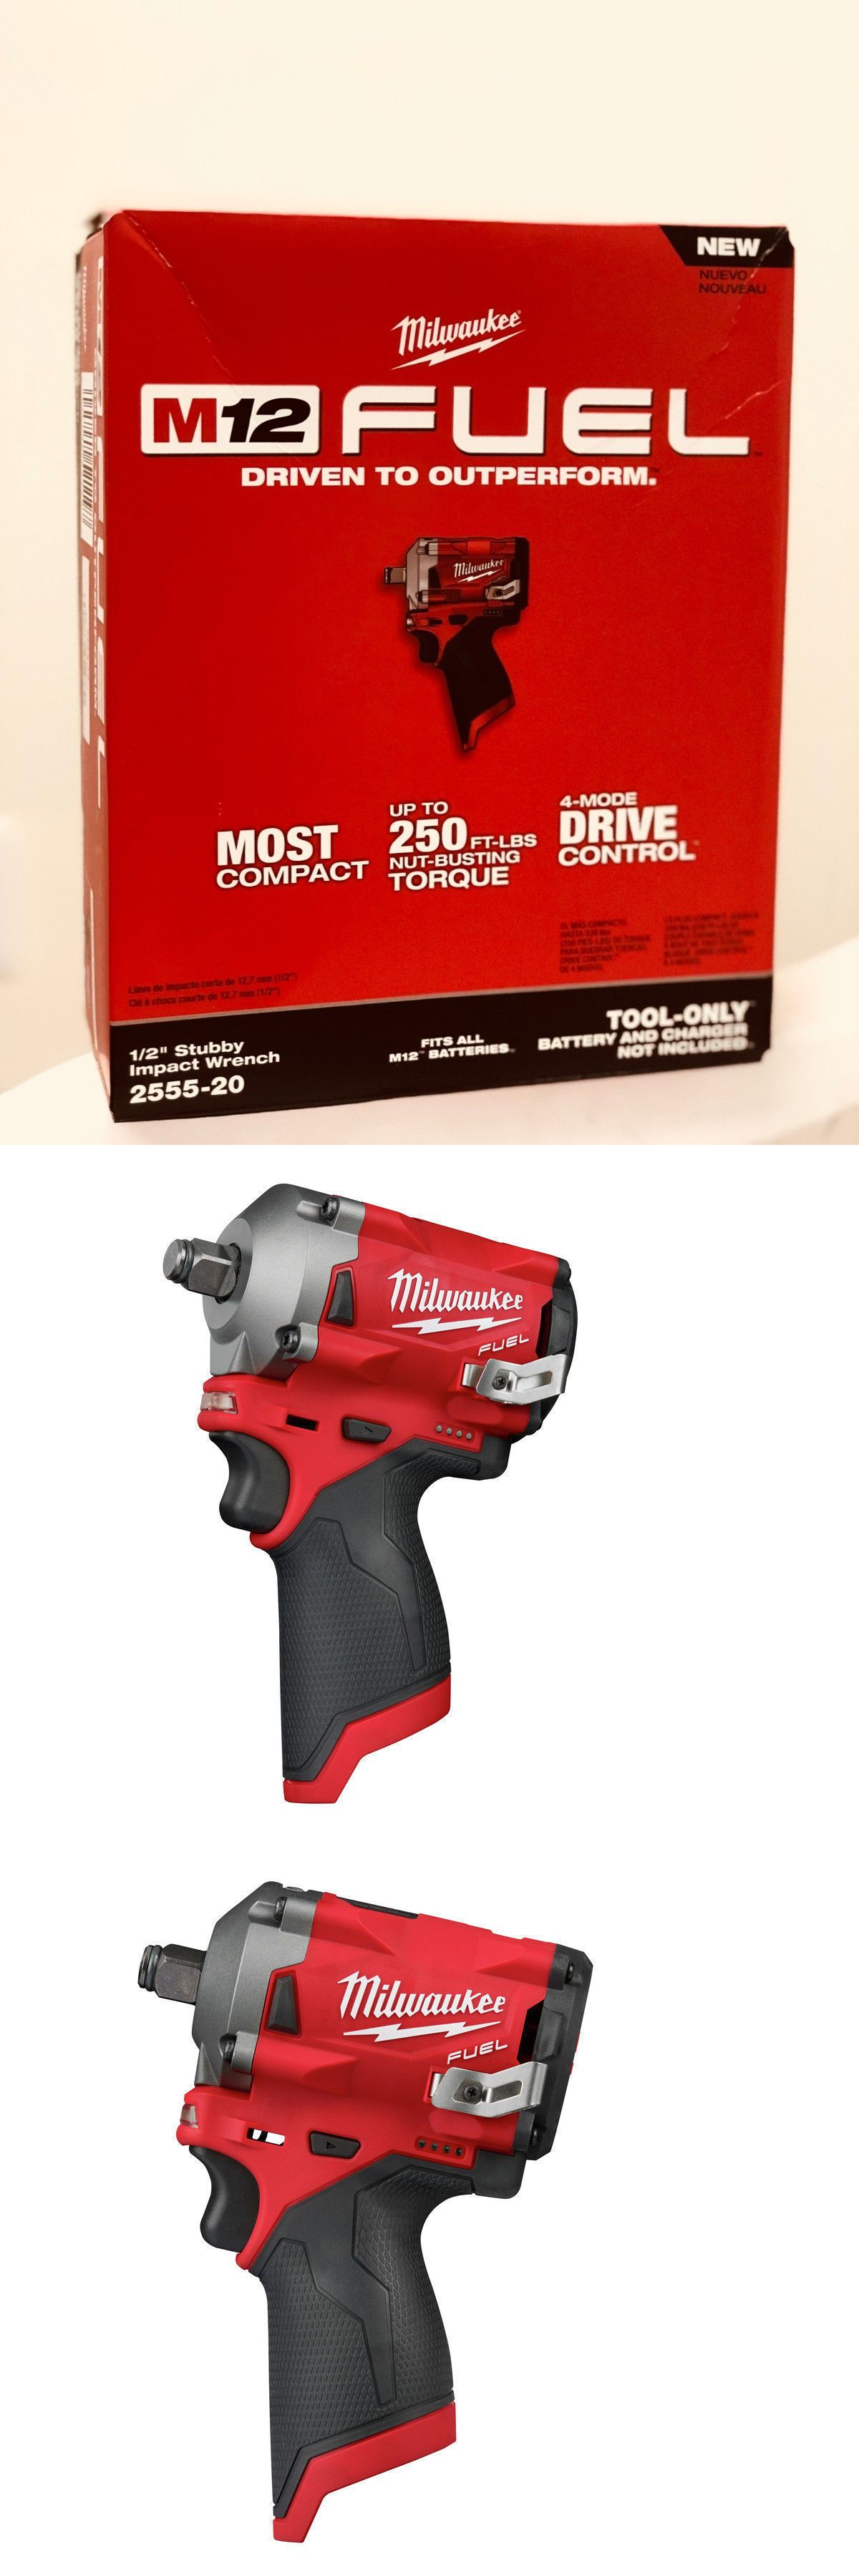 New In Box Milwaukee 2555 20 M12 Fuel Stubby 1 2 In Impact Wrench W Ring Impact Wrench Impact Wrenches Wrench